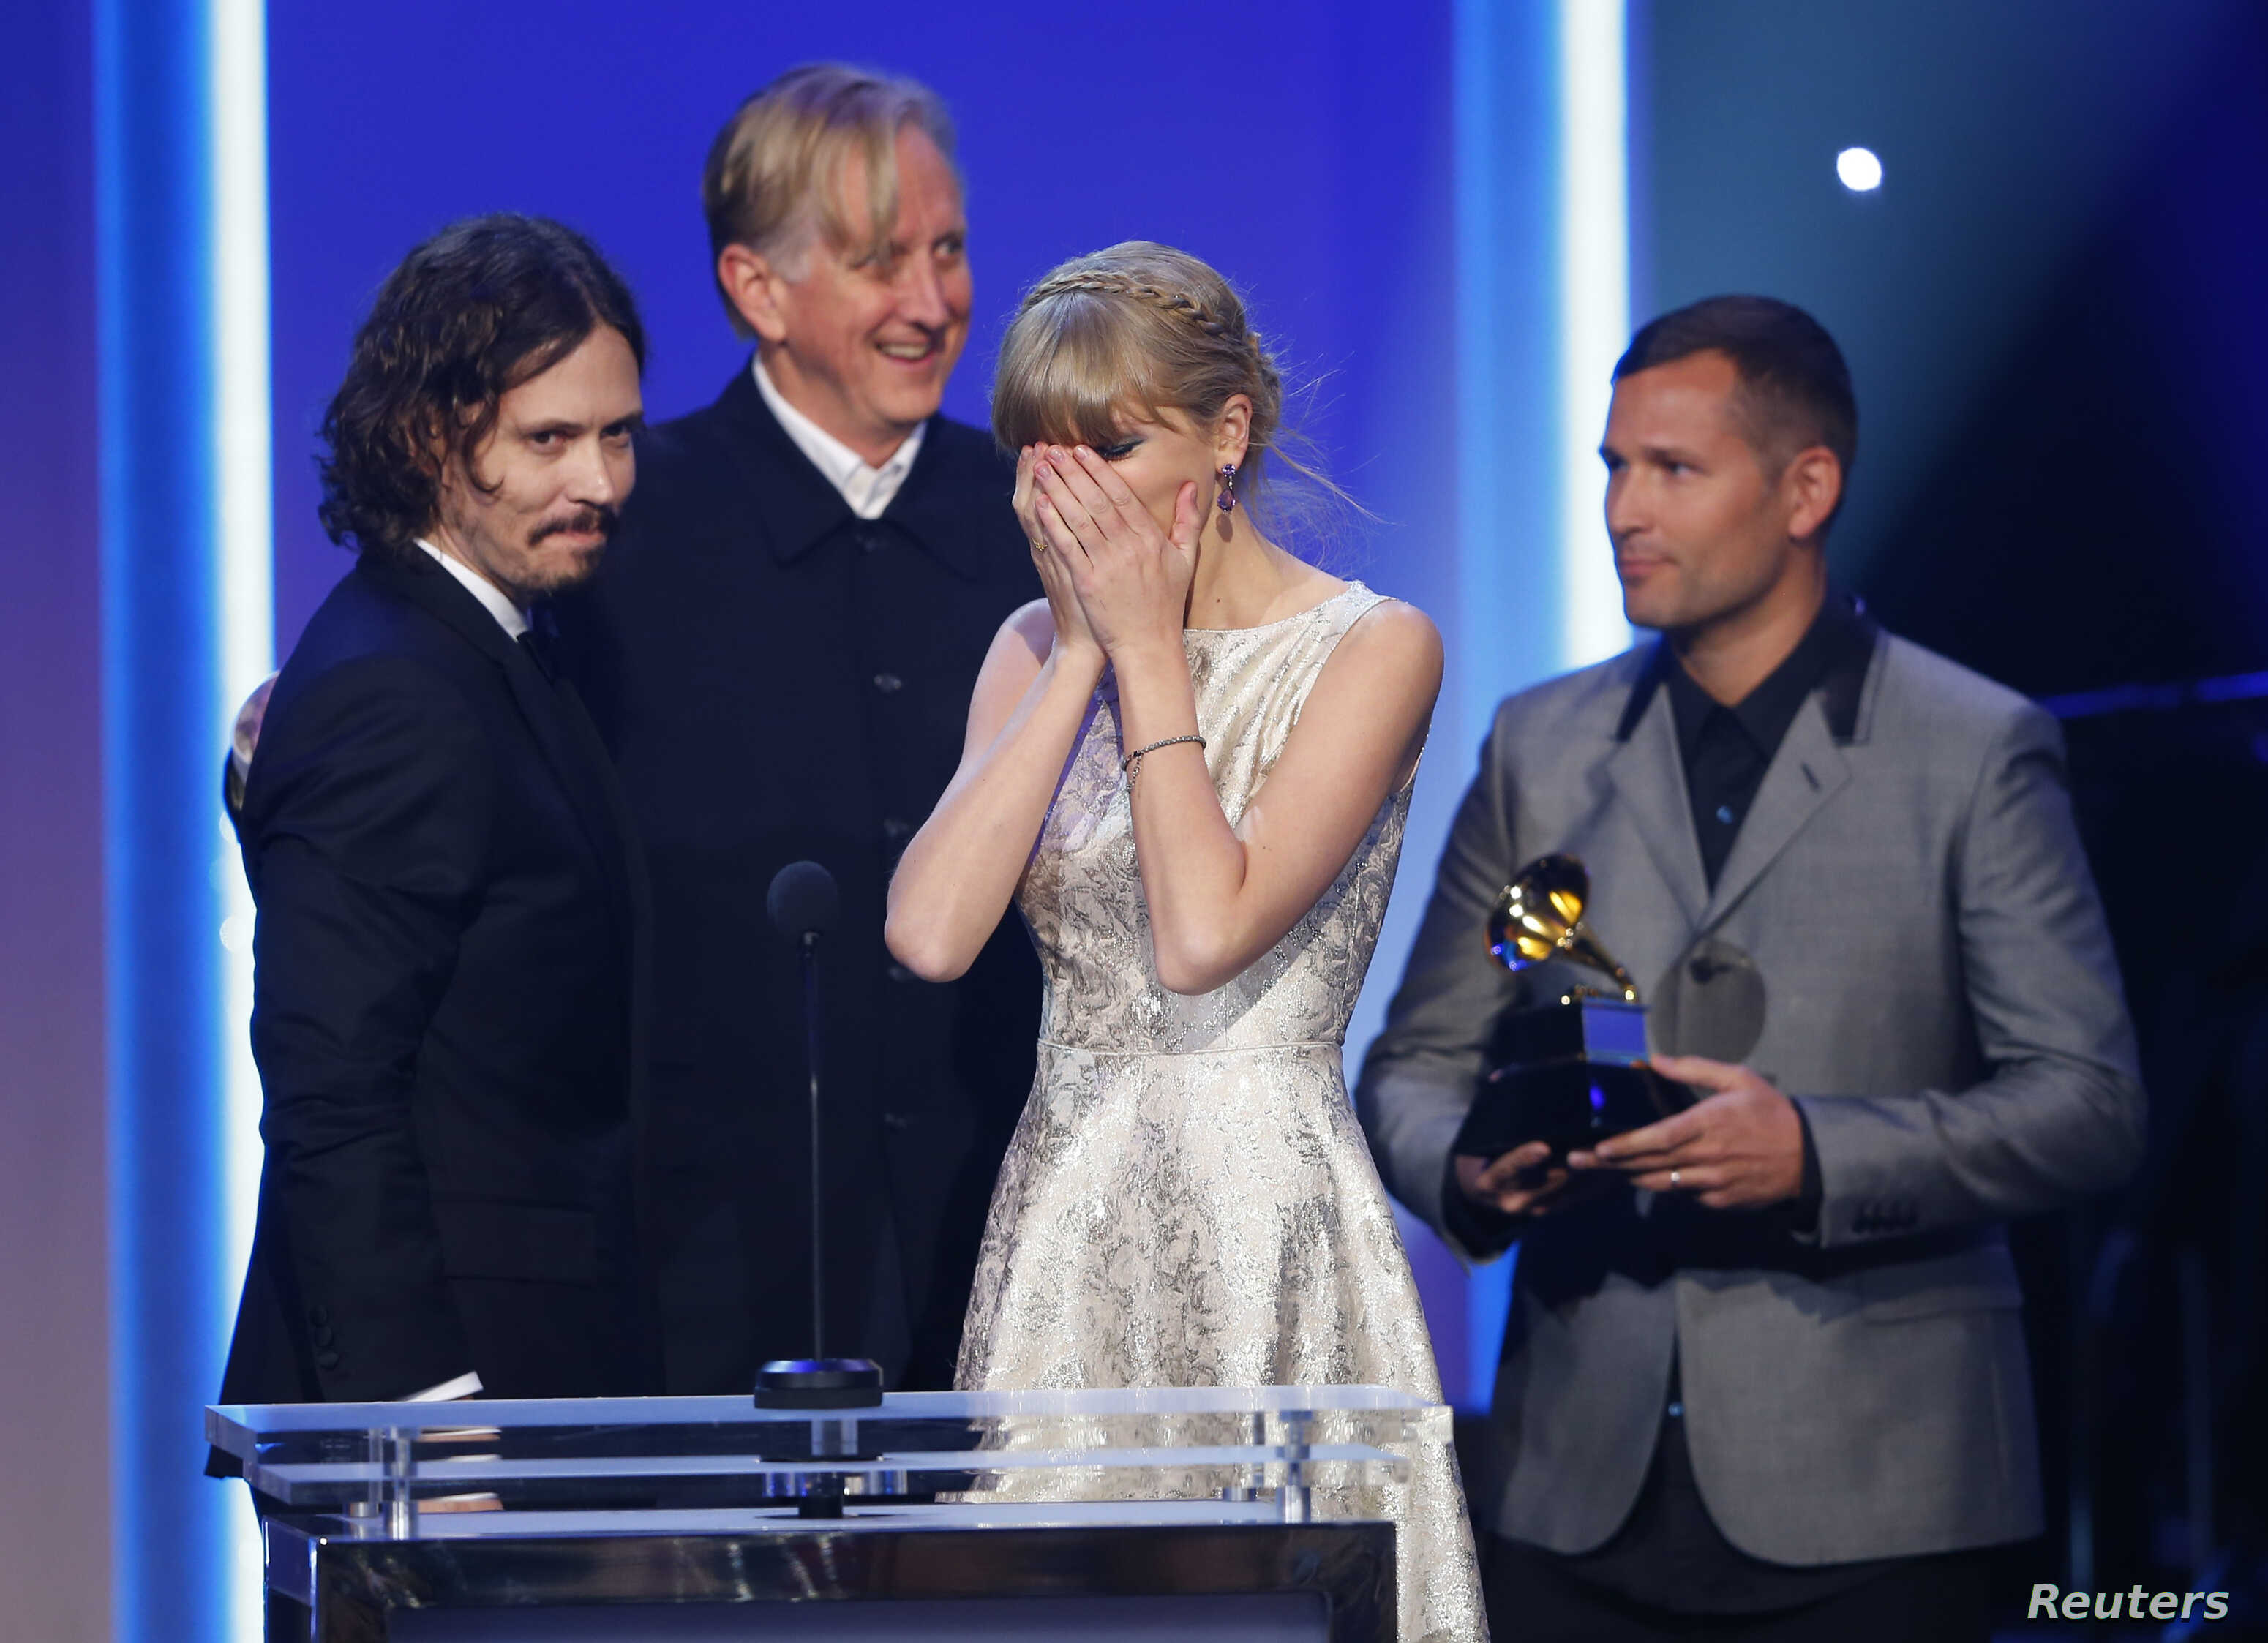 """Singer Taylor Swift reacts as she accepts the Grammy award for Best Song Written For Visual Media for """"Safe & Sound"""" with John Paul White (L) and T Bone Burnett (2nd from L) at the 55th annual Grammy Awards in Los Angeles, California, February 10, 20"""